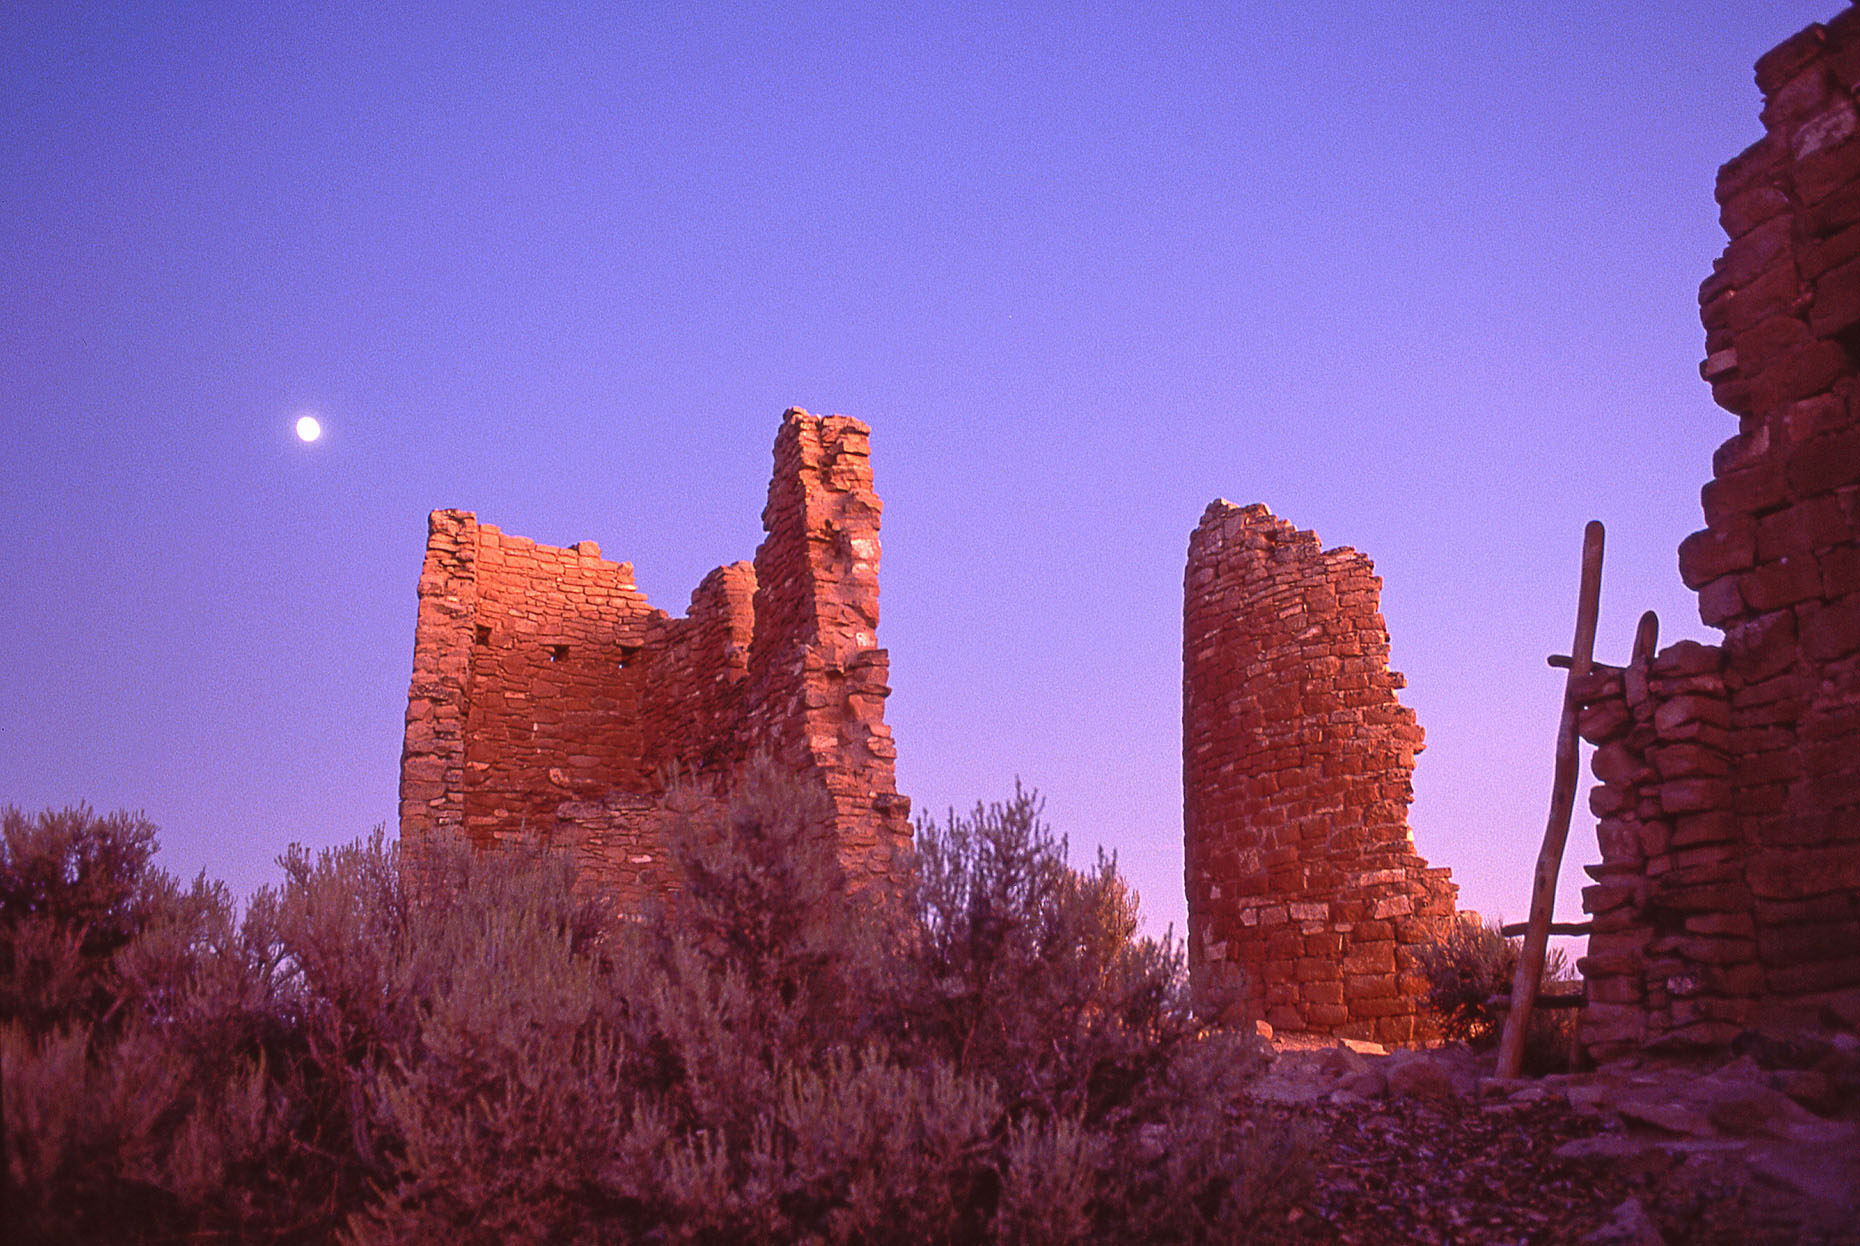 Hovenweep Castle, John Annerino, Hovenweep National Monument, UT